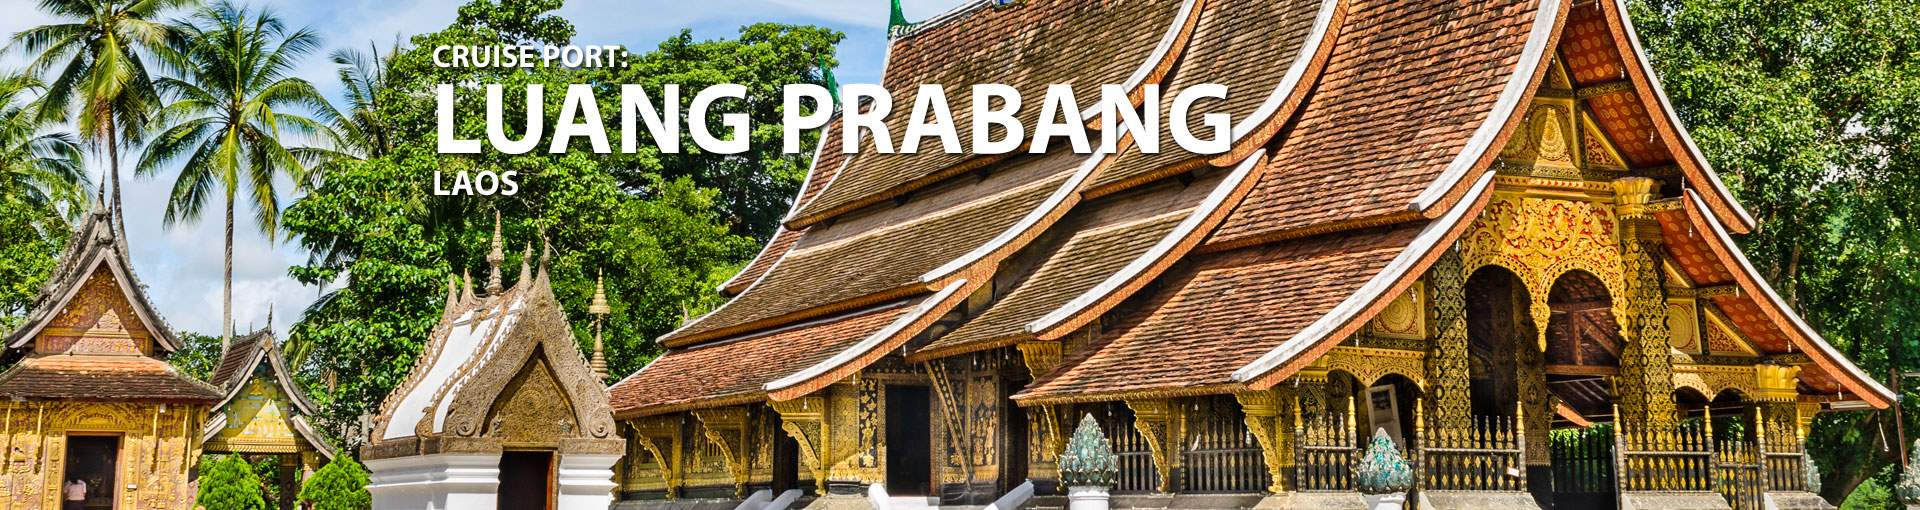 Cruises to Luang Prabang, Laos